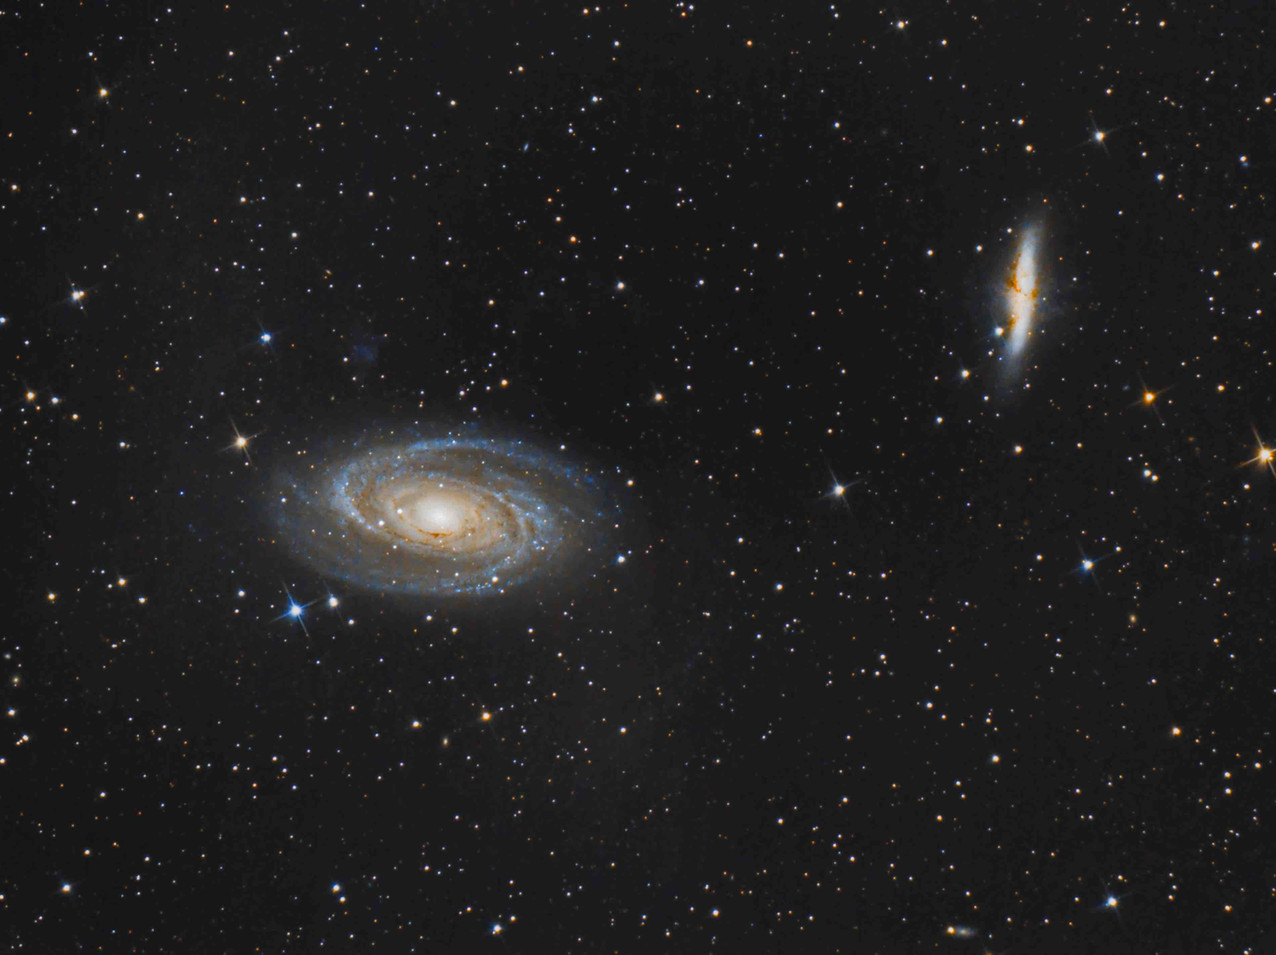 M81 and M82 with a telescope and DSLR camera